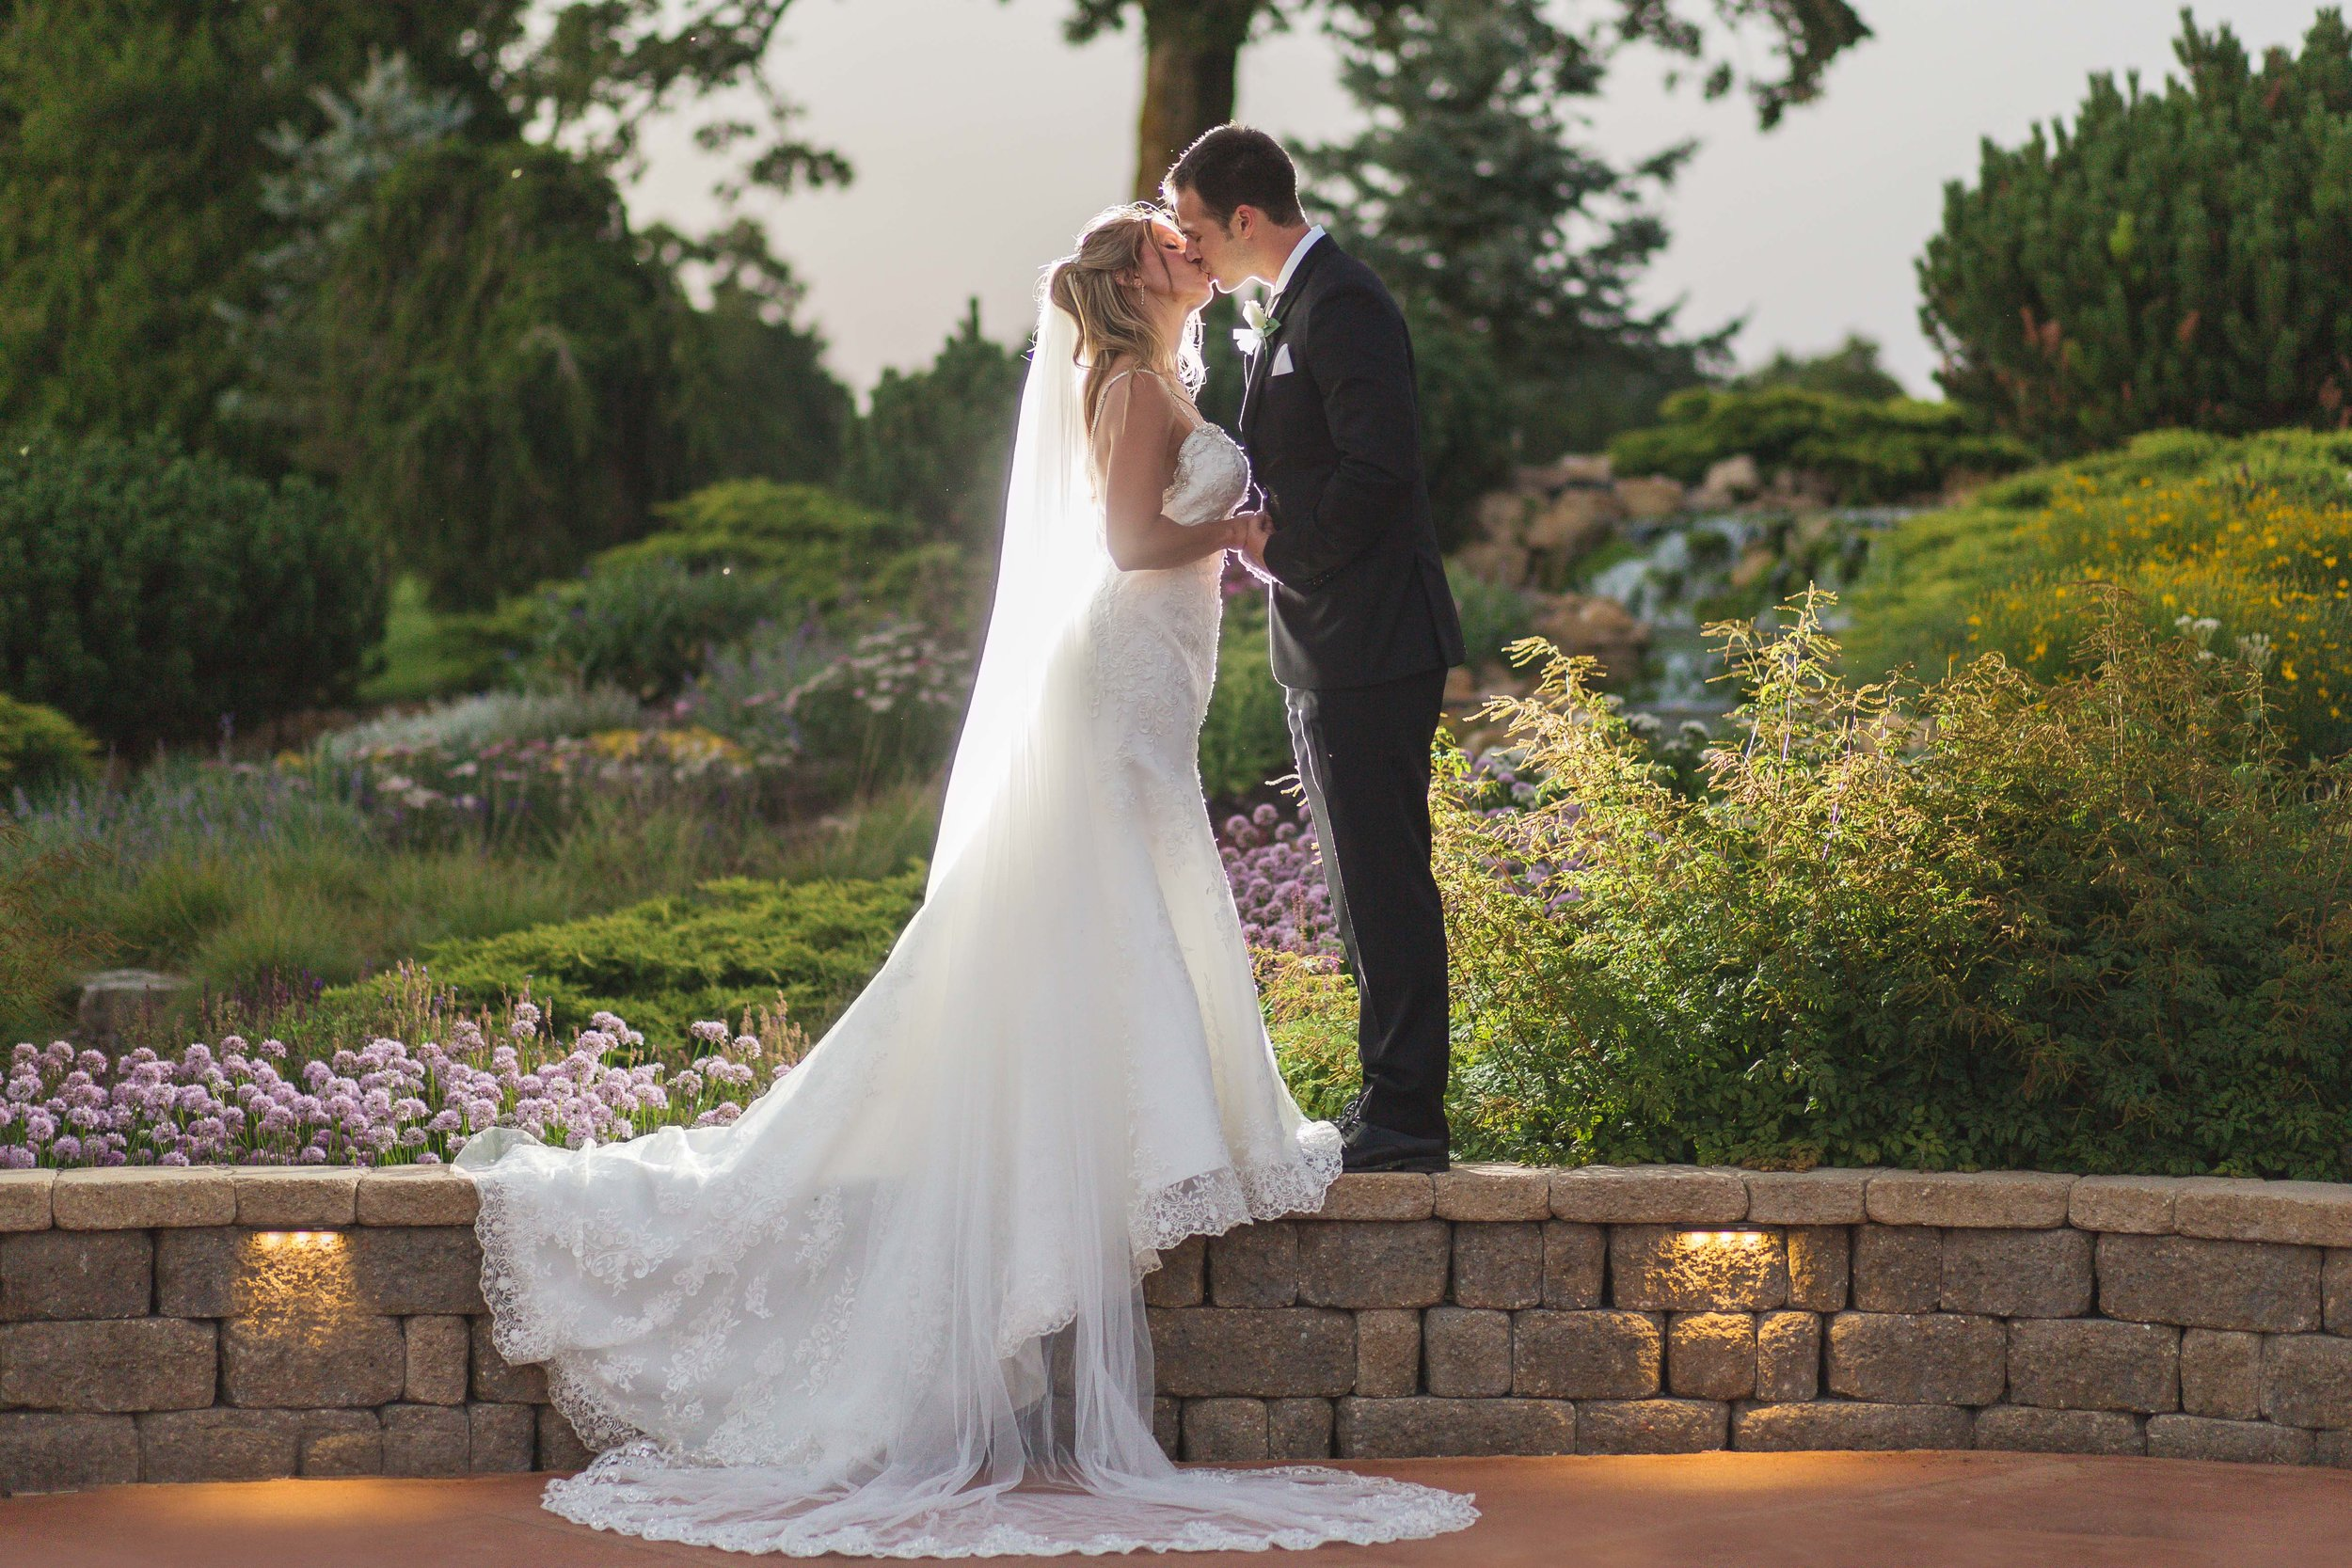 Ashley + Dan at Evergreen Country Club (July 29, 2017)